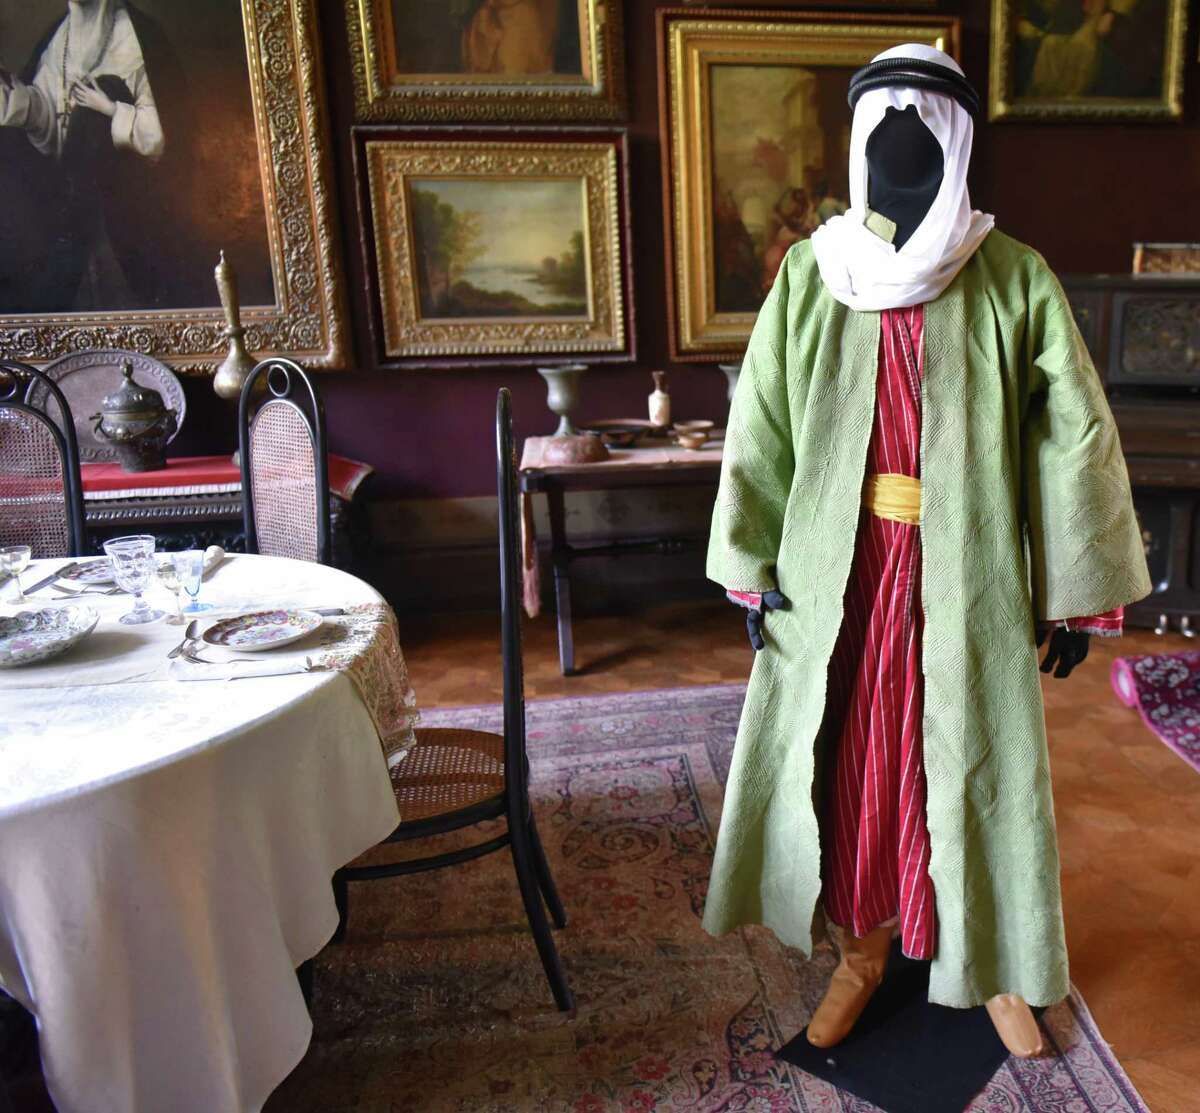 """Visitors to Olana State Historic Site can explore 19th century Middle Eastern clothing through The Olana Partnership's special exhibition for this year, """"COSTUME & CUSTOM: Middle Eastern Threads at Olana."""" The exhibit, which features clothing collected by Frederic Church during his Middle Eastern travels in 1867 and 1868, will be open to the public from June 17 to Nov. 25. (Massarah Mikati / Times Union)"""